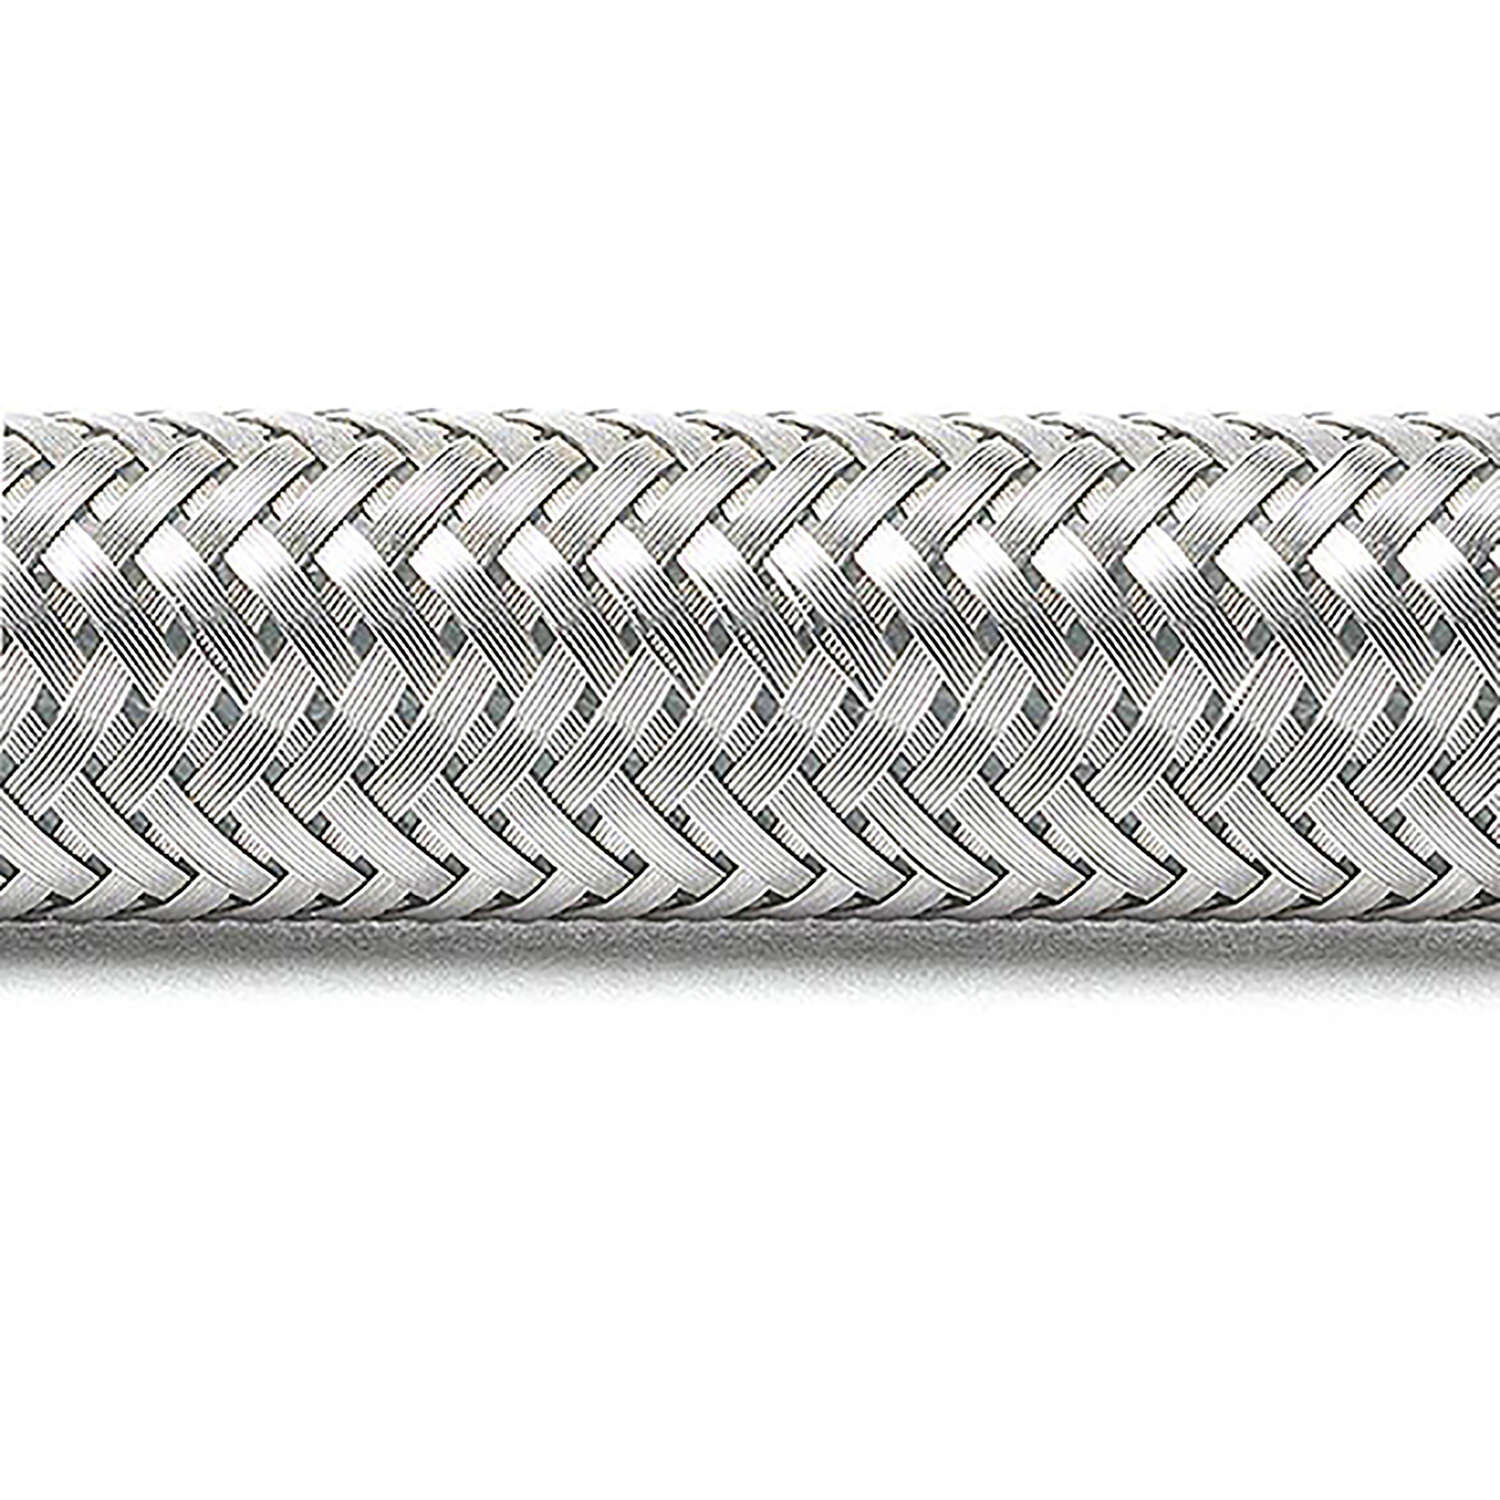 Ace  3/8 in. Compression   x 1/2 in. Dia. x 30 in. L FIP  Braided Stainless Steel  For Faucet supply